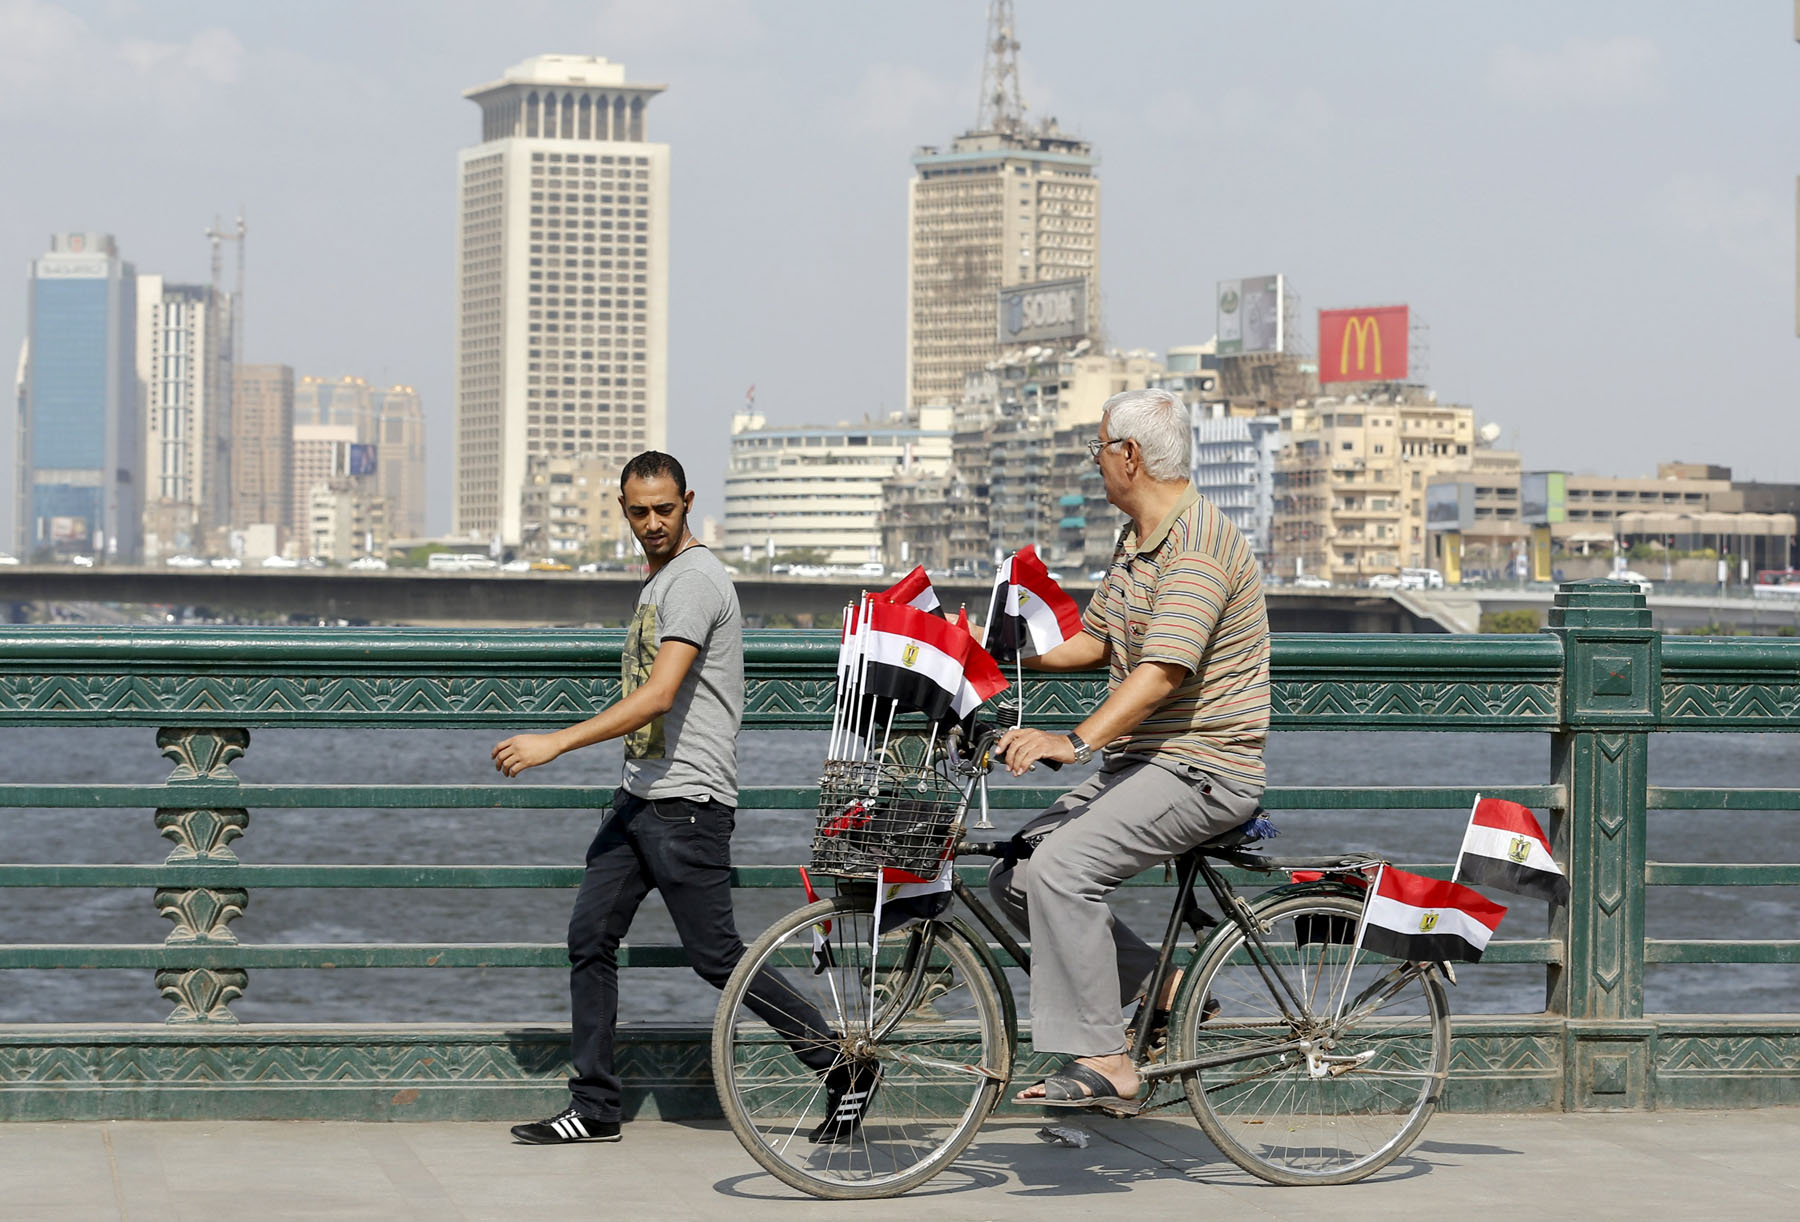 A man rides a bicycle decorated with Egyptian national flags at Qasr al-Nil bridge in Cairo. (Reuters)